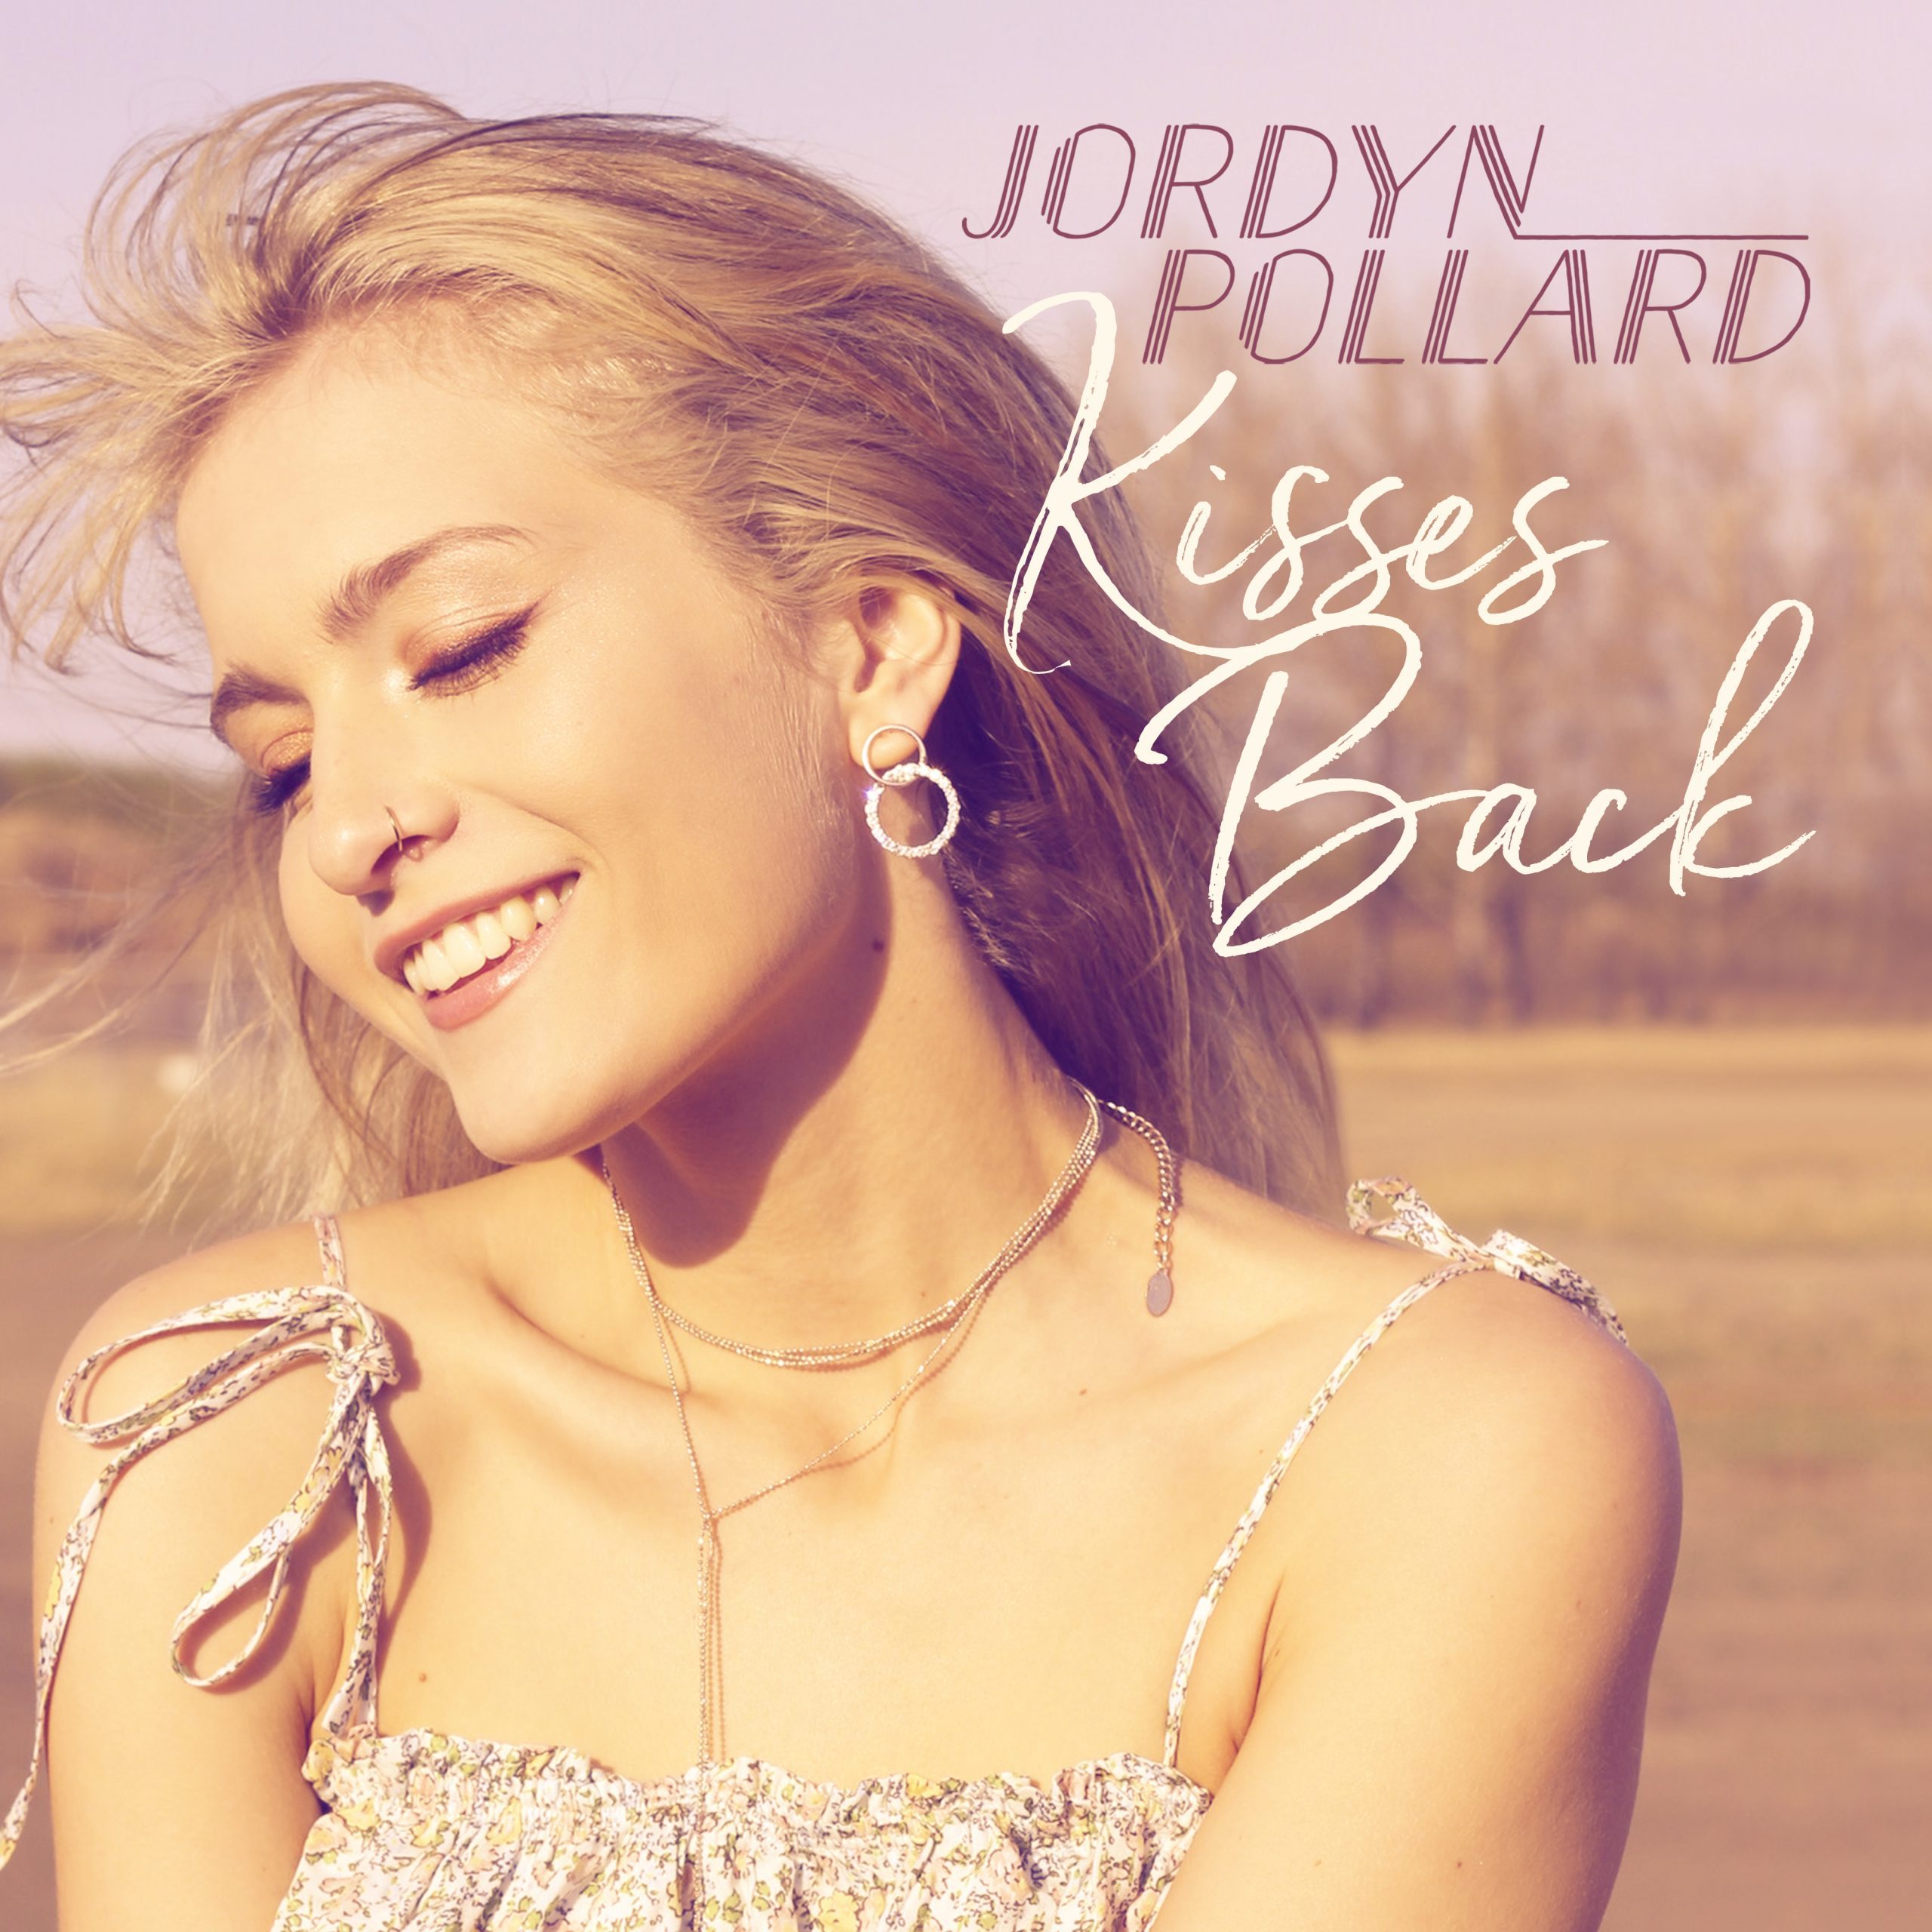 """You are currently viewing Why Jordyn Pollard's """"Kisses Back"""" Is Not Your Typical Breakup Song"""